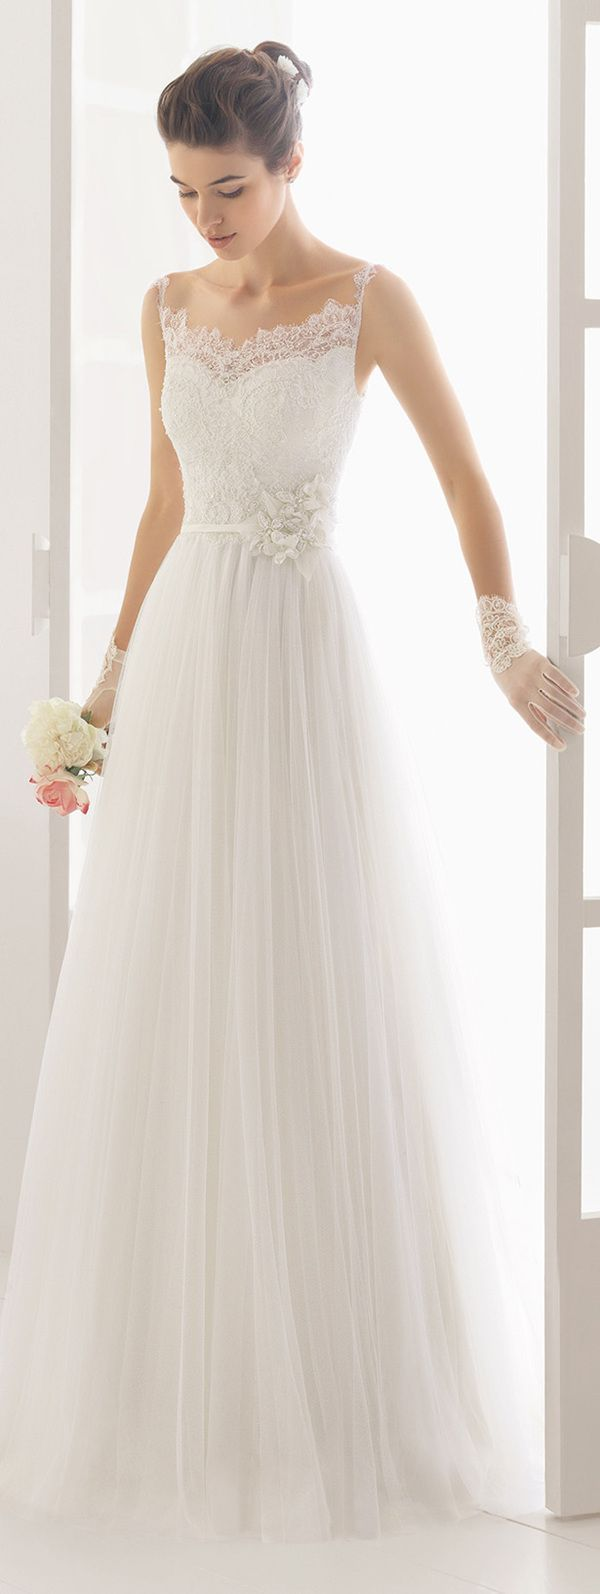 Aire Barcelona charm lace wedding dresses  with thin straps